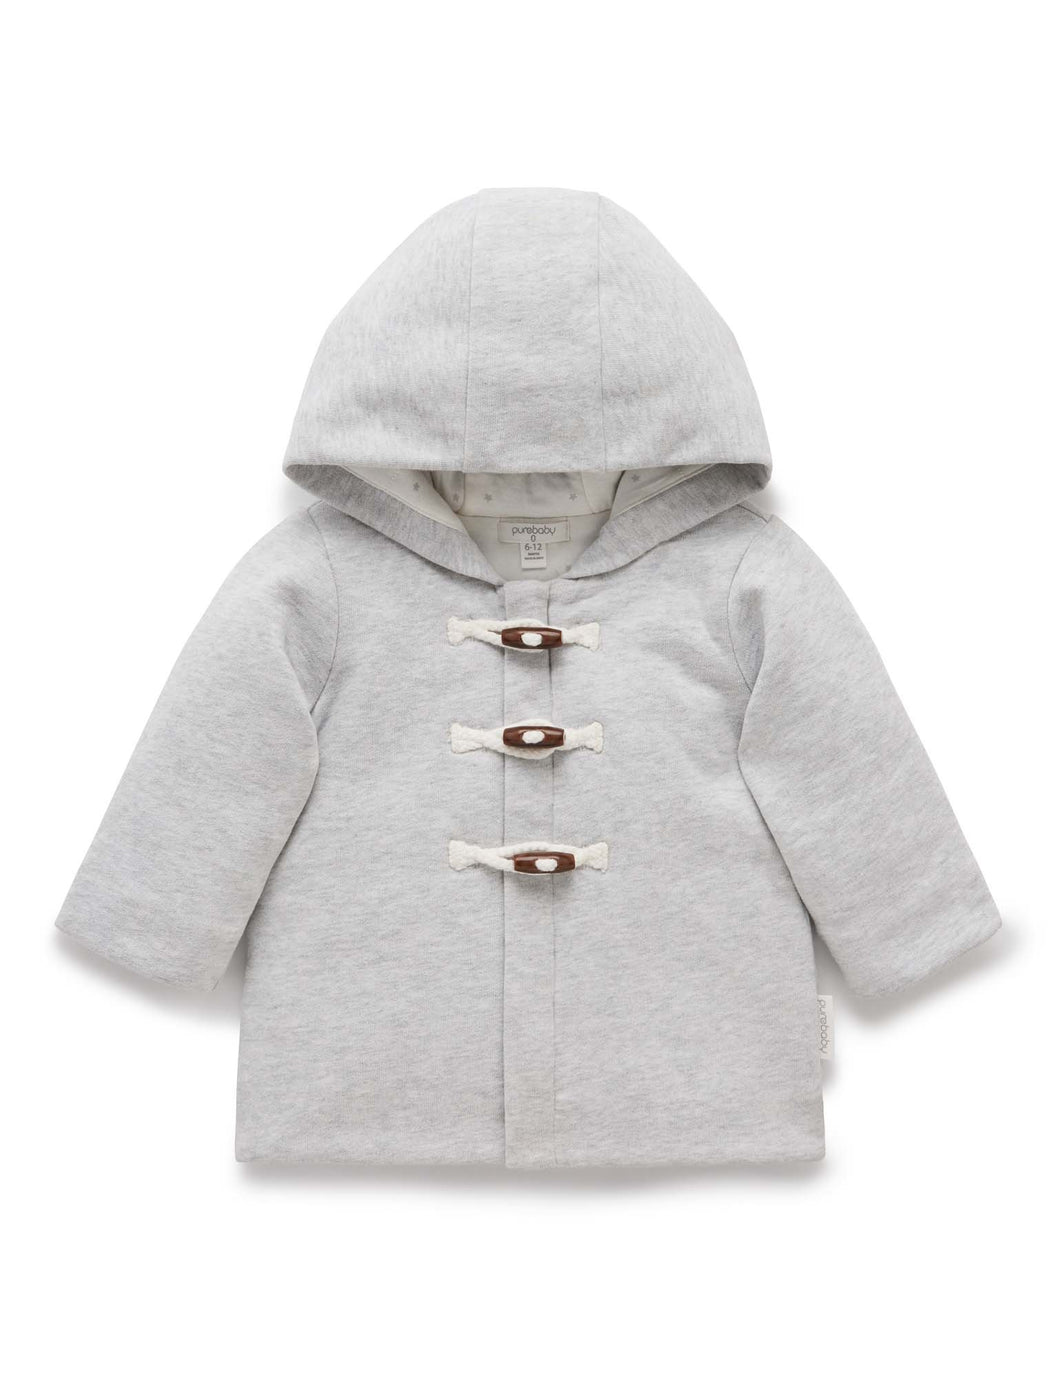 Pure Baby | Paddington Jacket - Grey